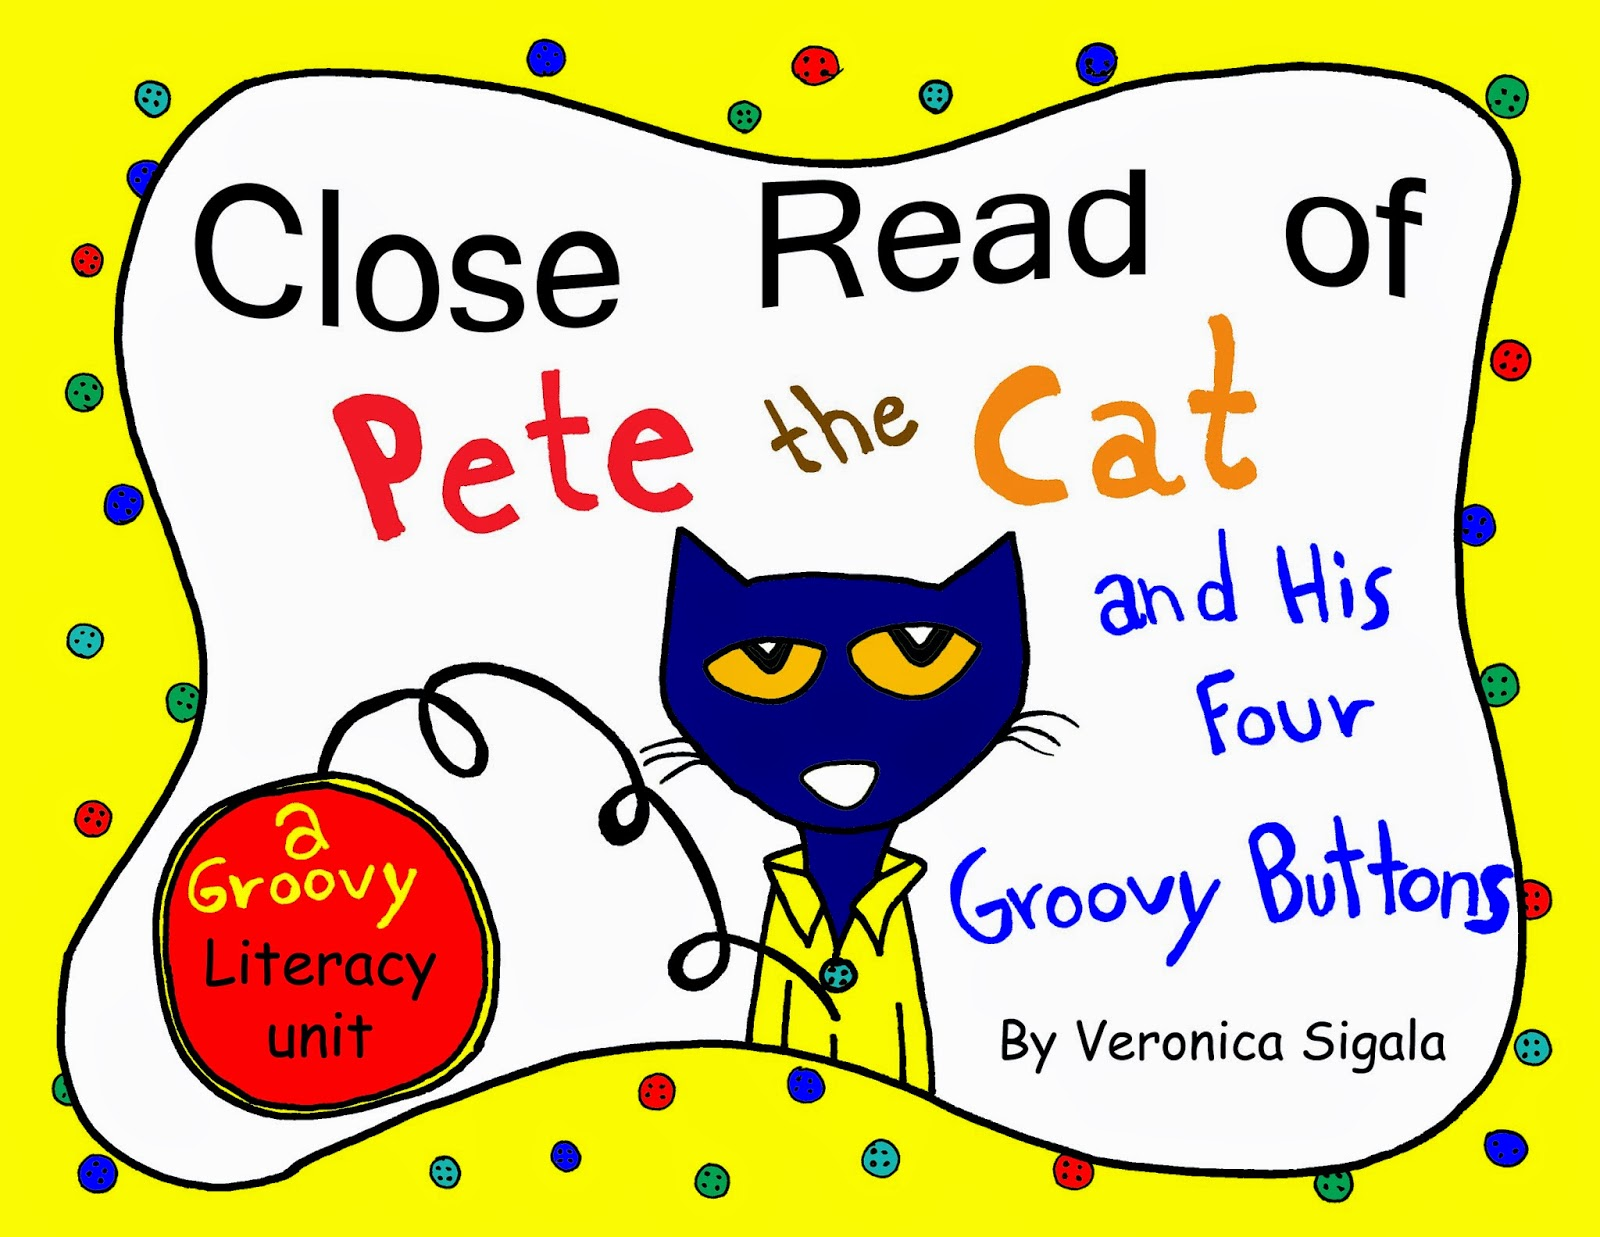 Pete Cat 4 Groovy Buttons Coloring Page